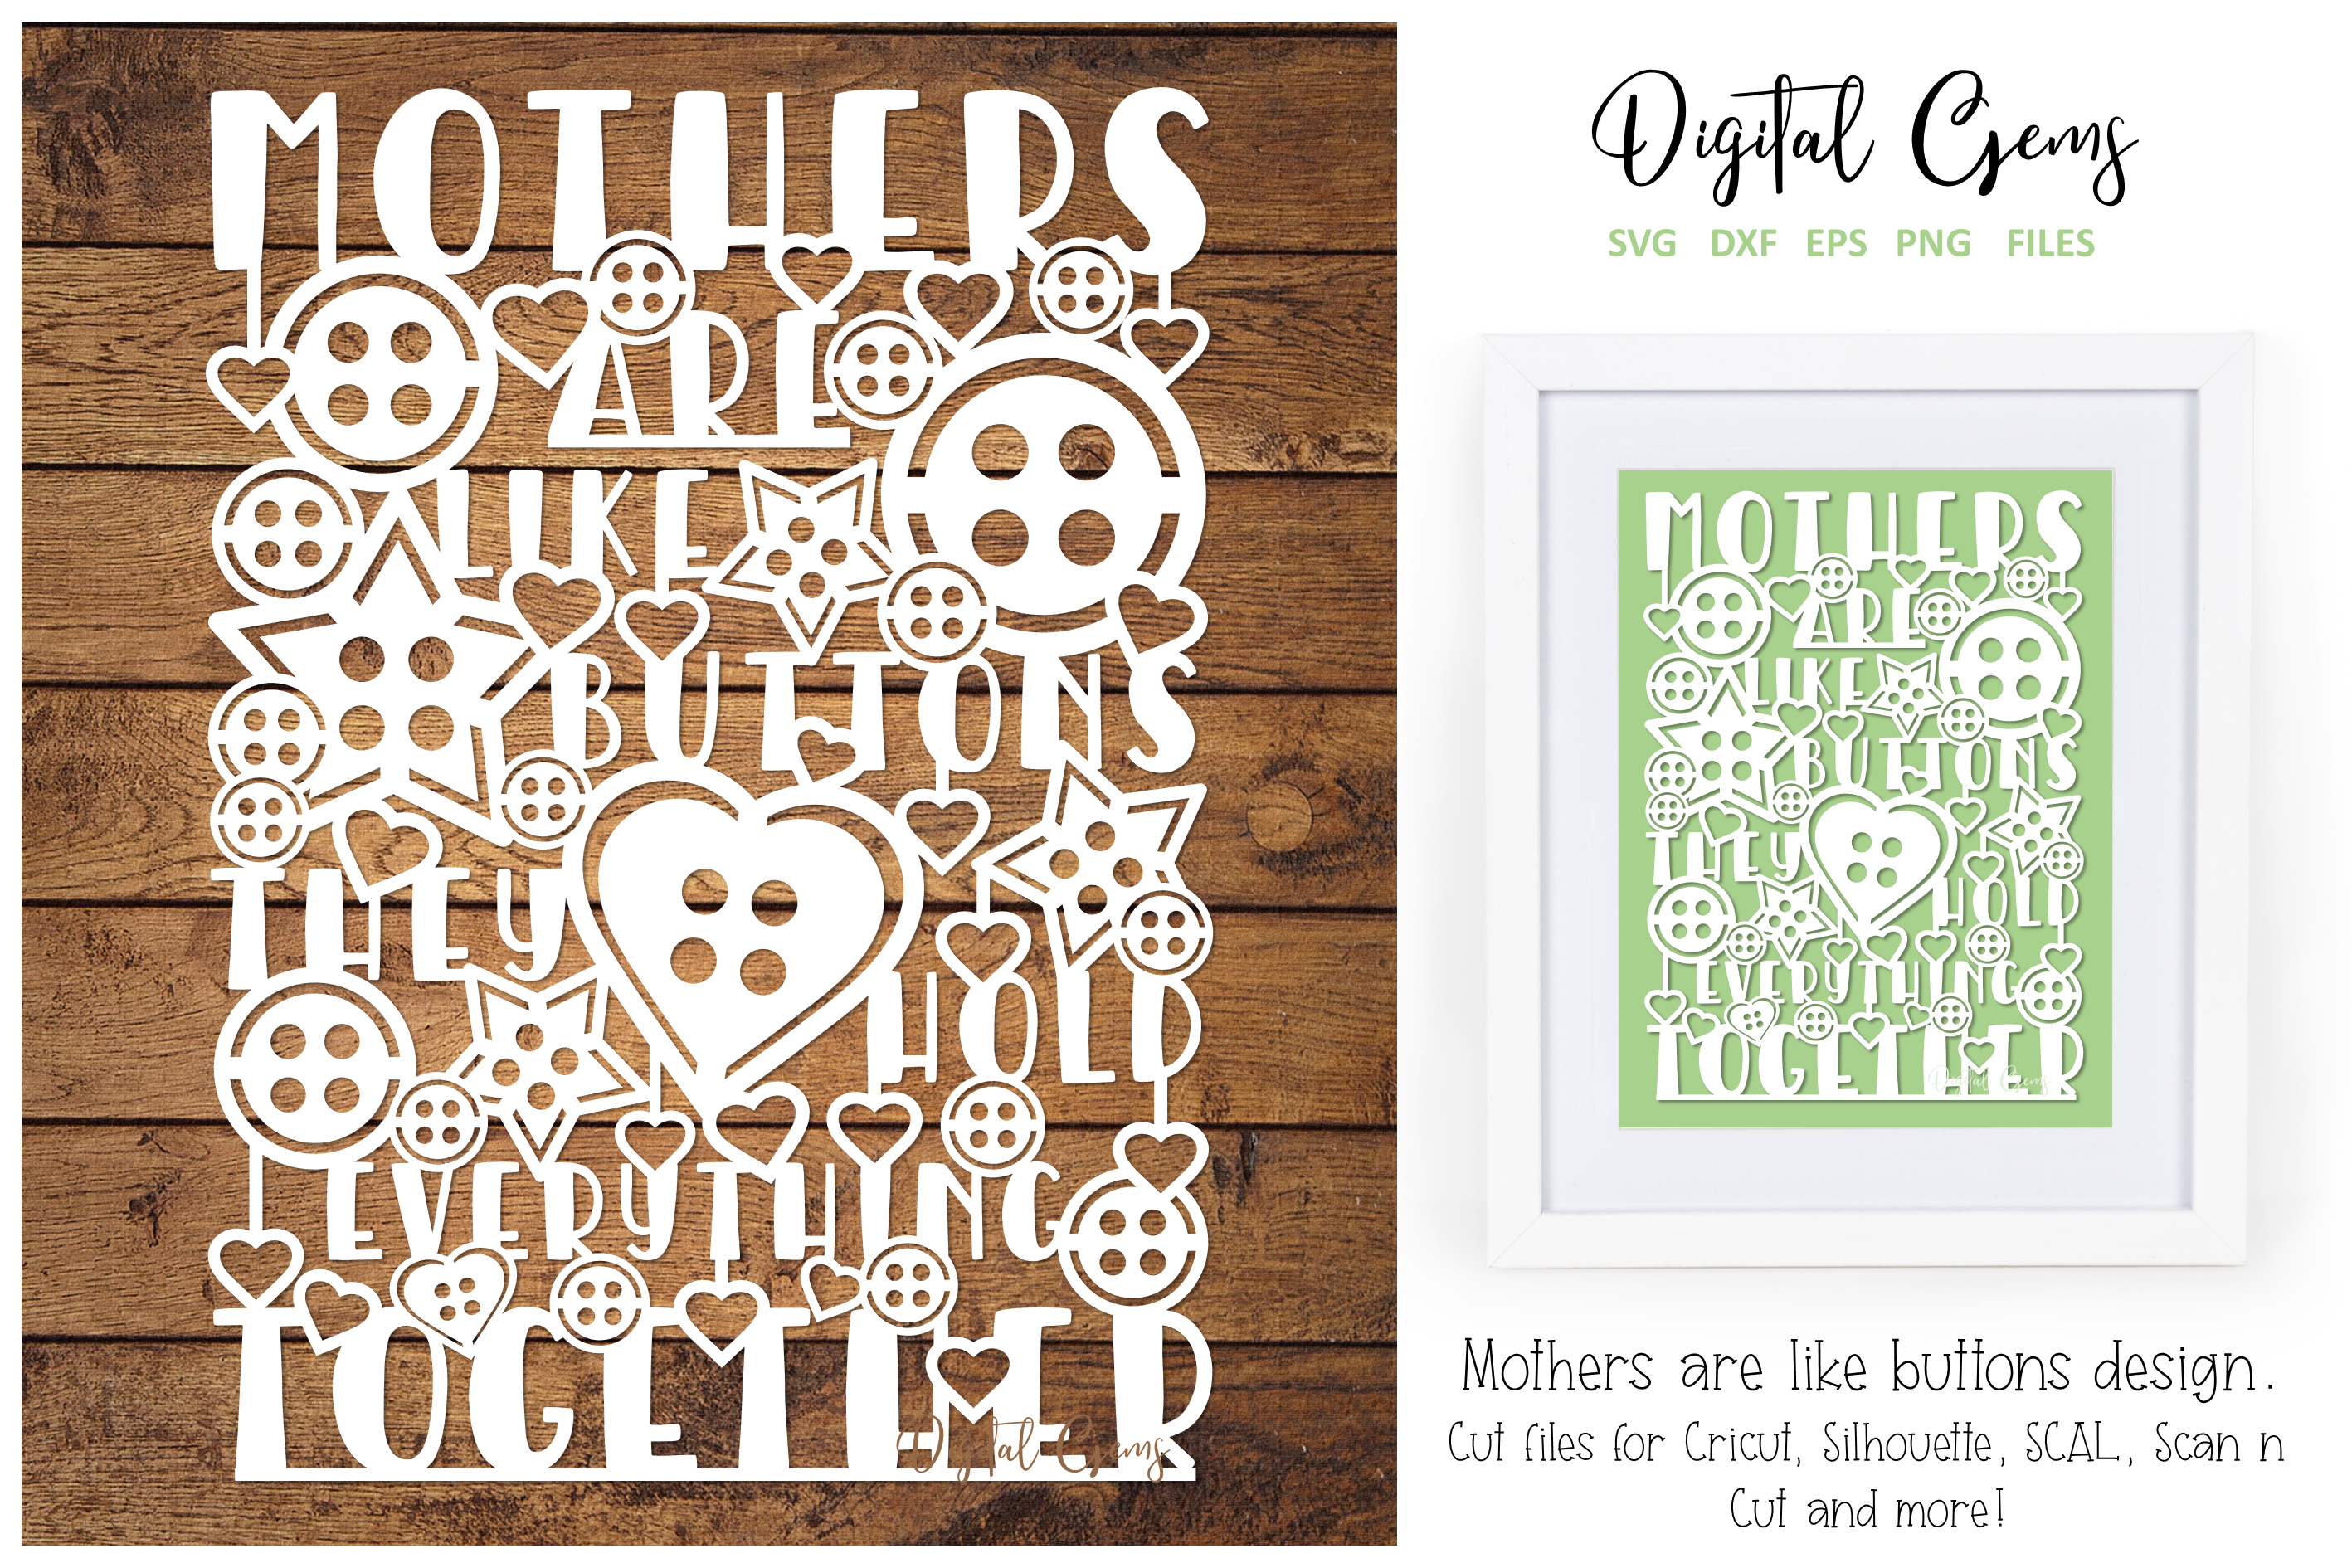 Mothers Are Like Buttons Design By Digital Gems Thehungryjpeg Com